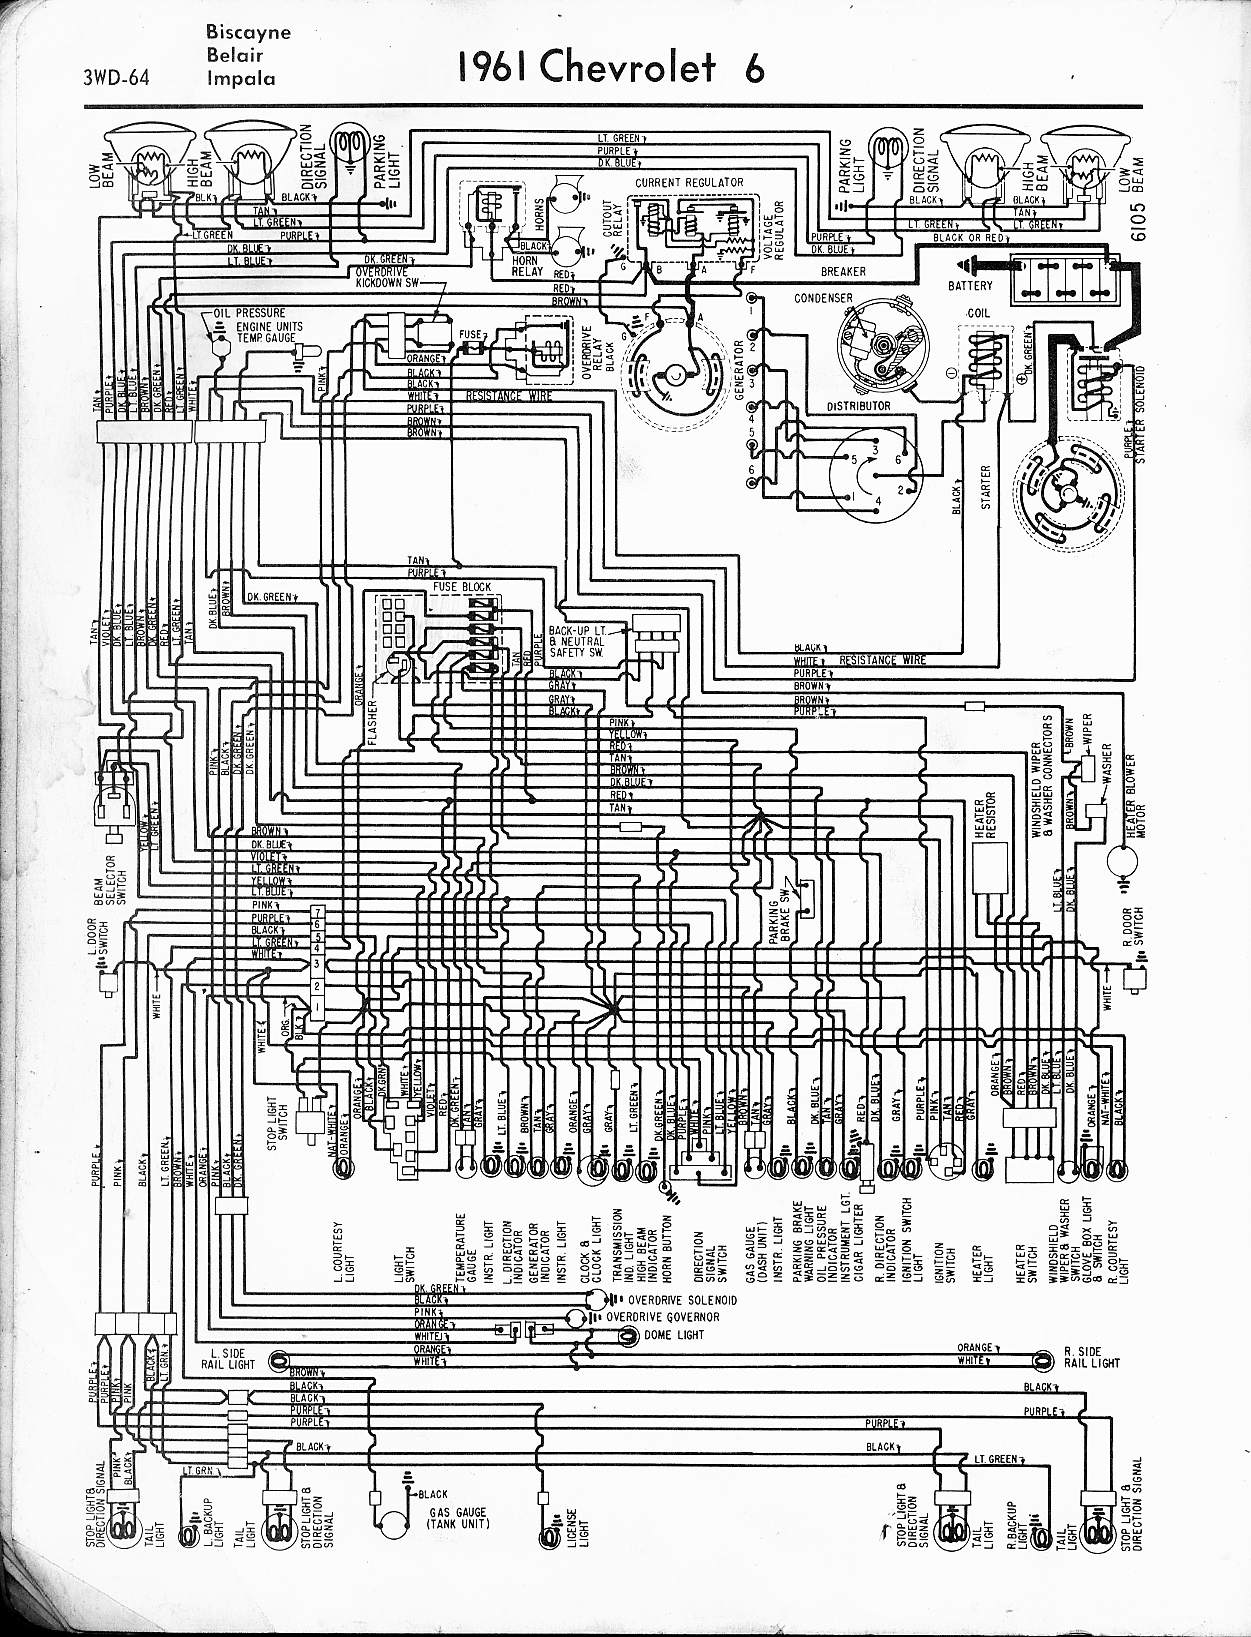 1968 Corvair Wiring Diagram 57 65 Chevy Wiring Diagrams